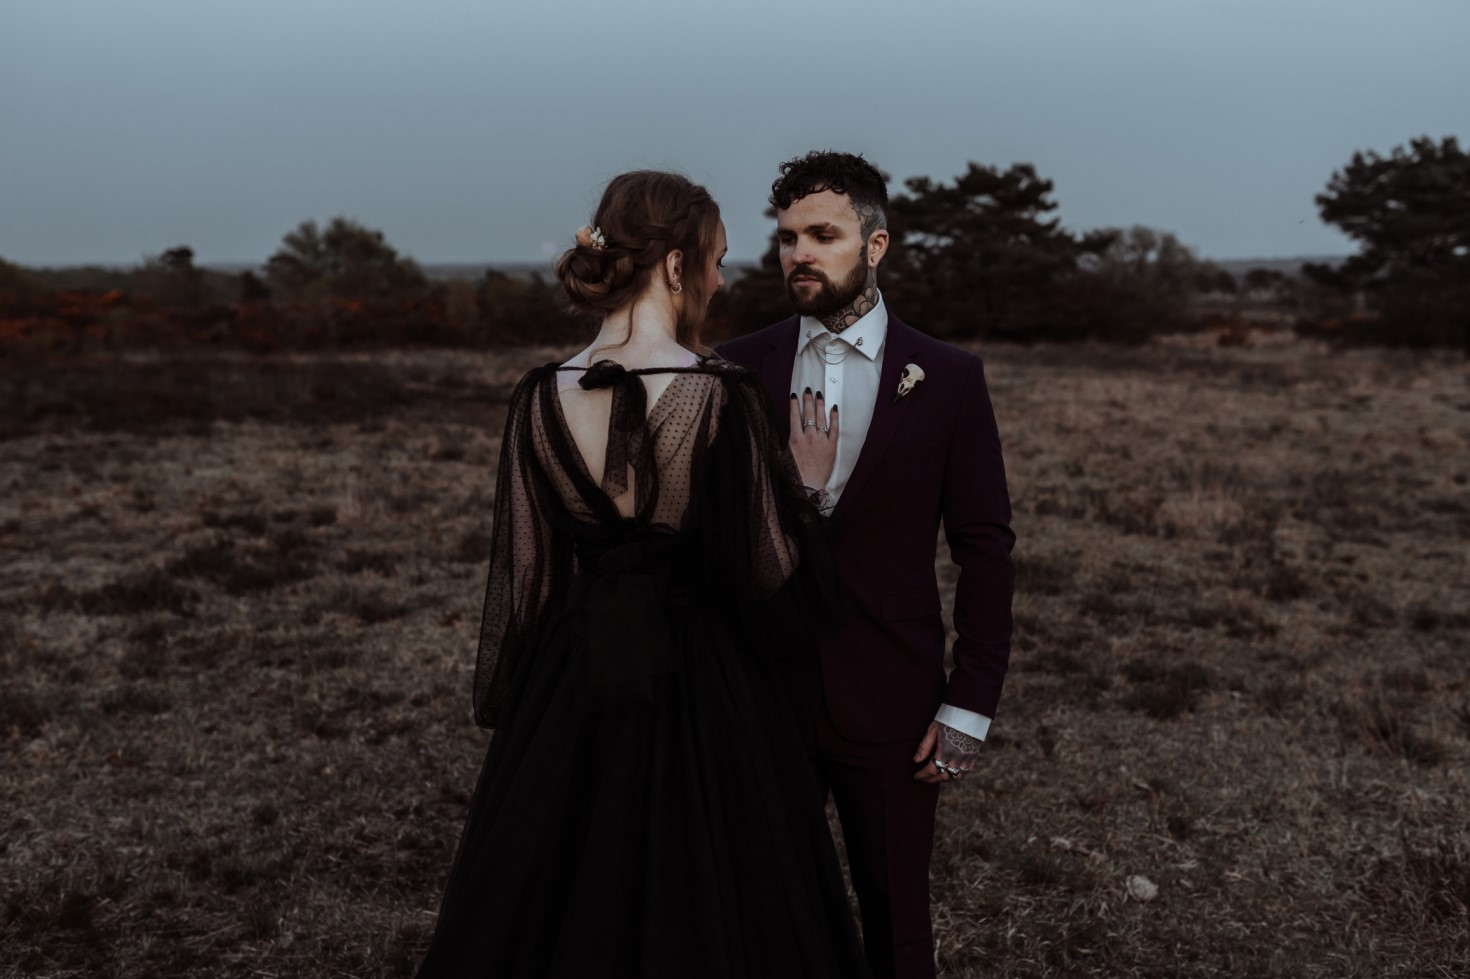 Finn And The Fox Photography-Moody Elopement Wedding- alternative wedding - gothic wedding - black wedding dress